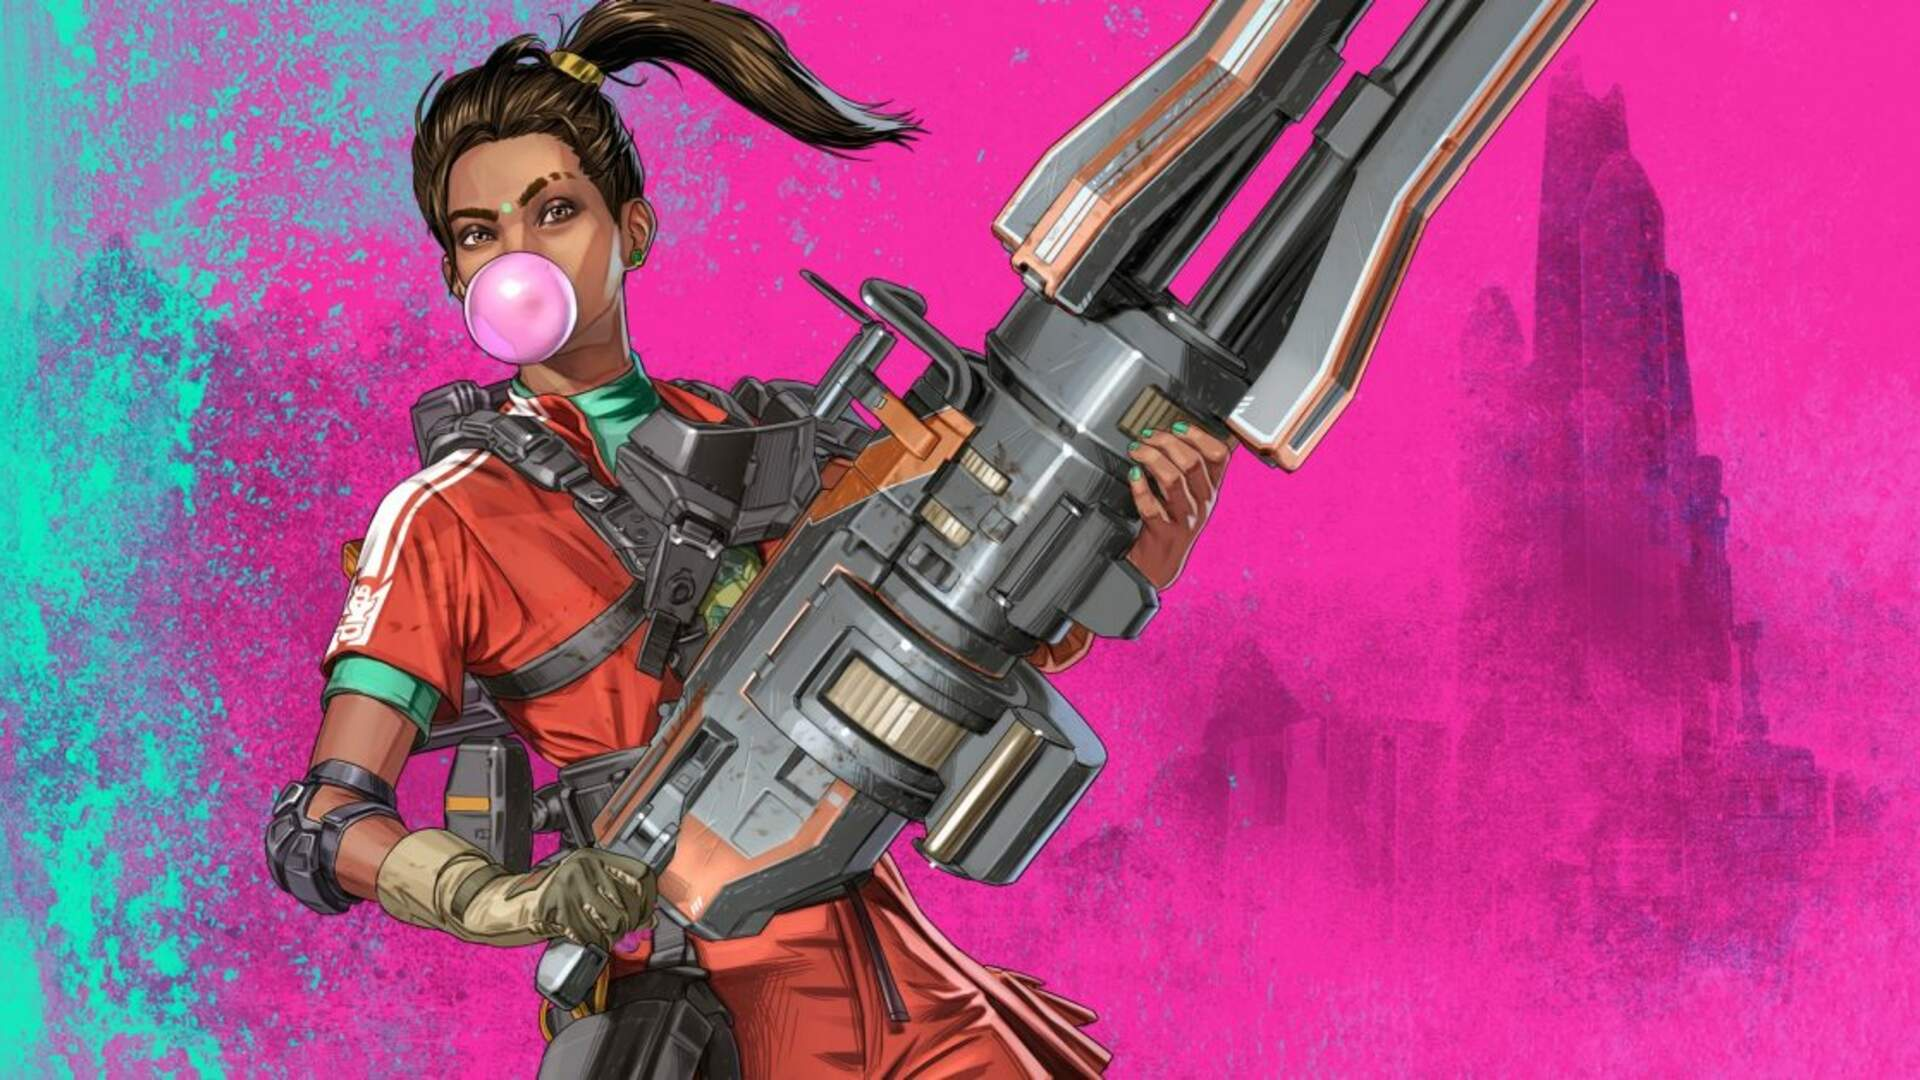 Apex Legends Gets Experimental With Crafting and Armor Changes in Season 6